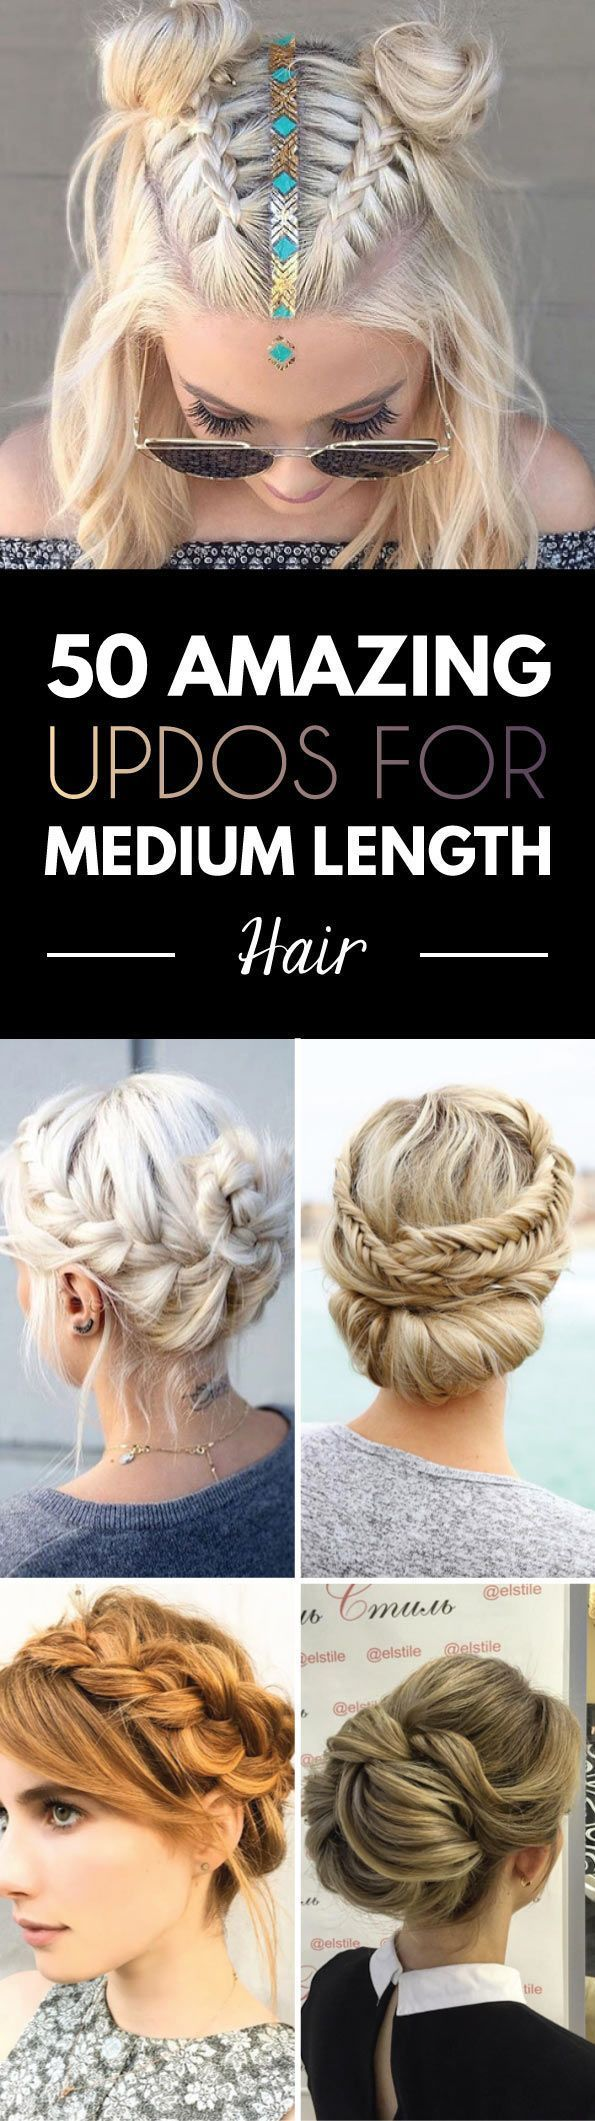 Great selection of updos for medium length hair - Deconstructed fishtail updo. (Letitia Booth) Low braided updo. (Lorena) Knotted top bun. (Cococha) Chic french twist. (Show Beauty) Laced braid ...